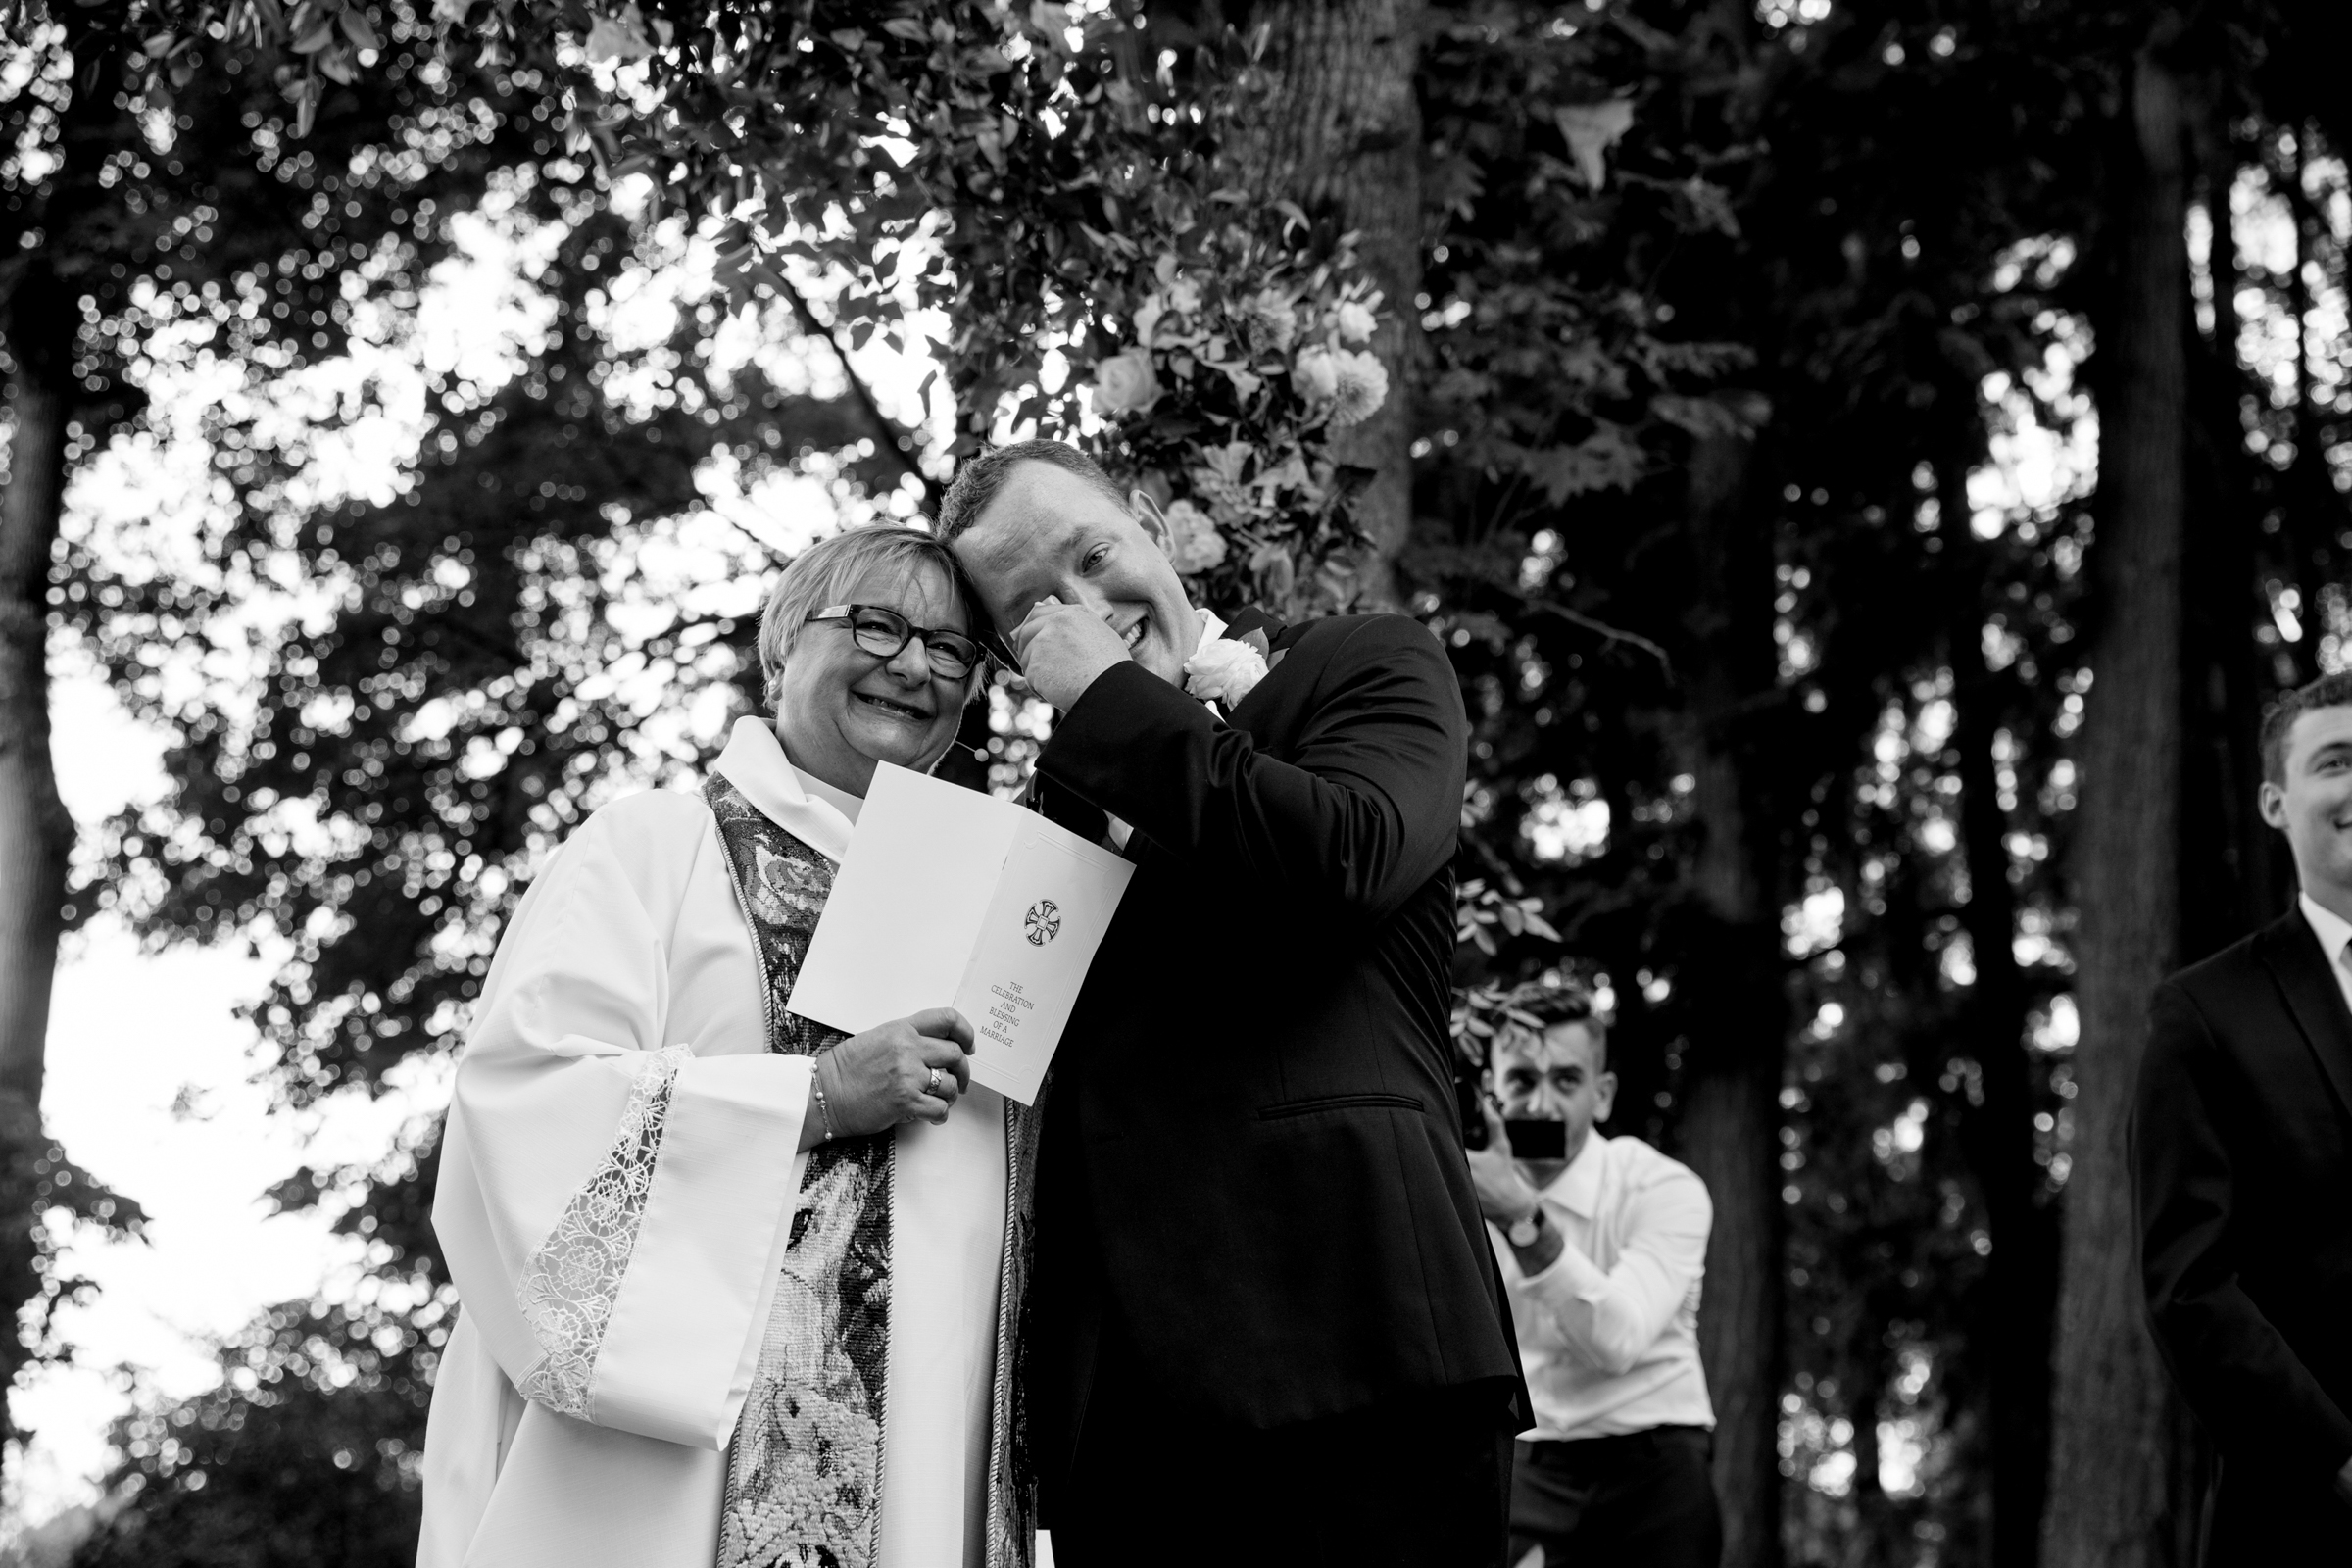 Officiant smiles as groom sheds a tear - photo by Jessica Hill Photography